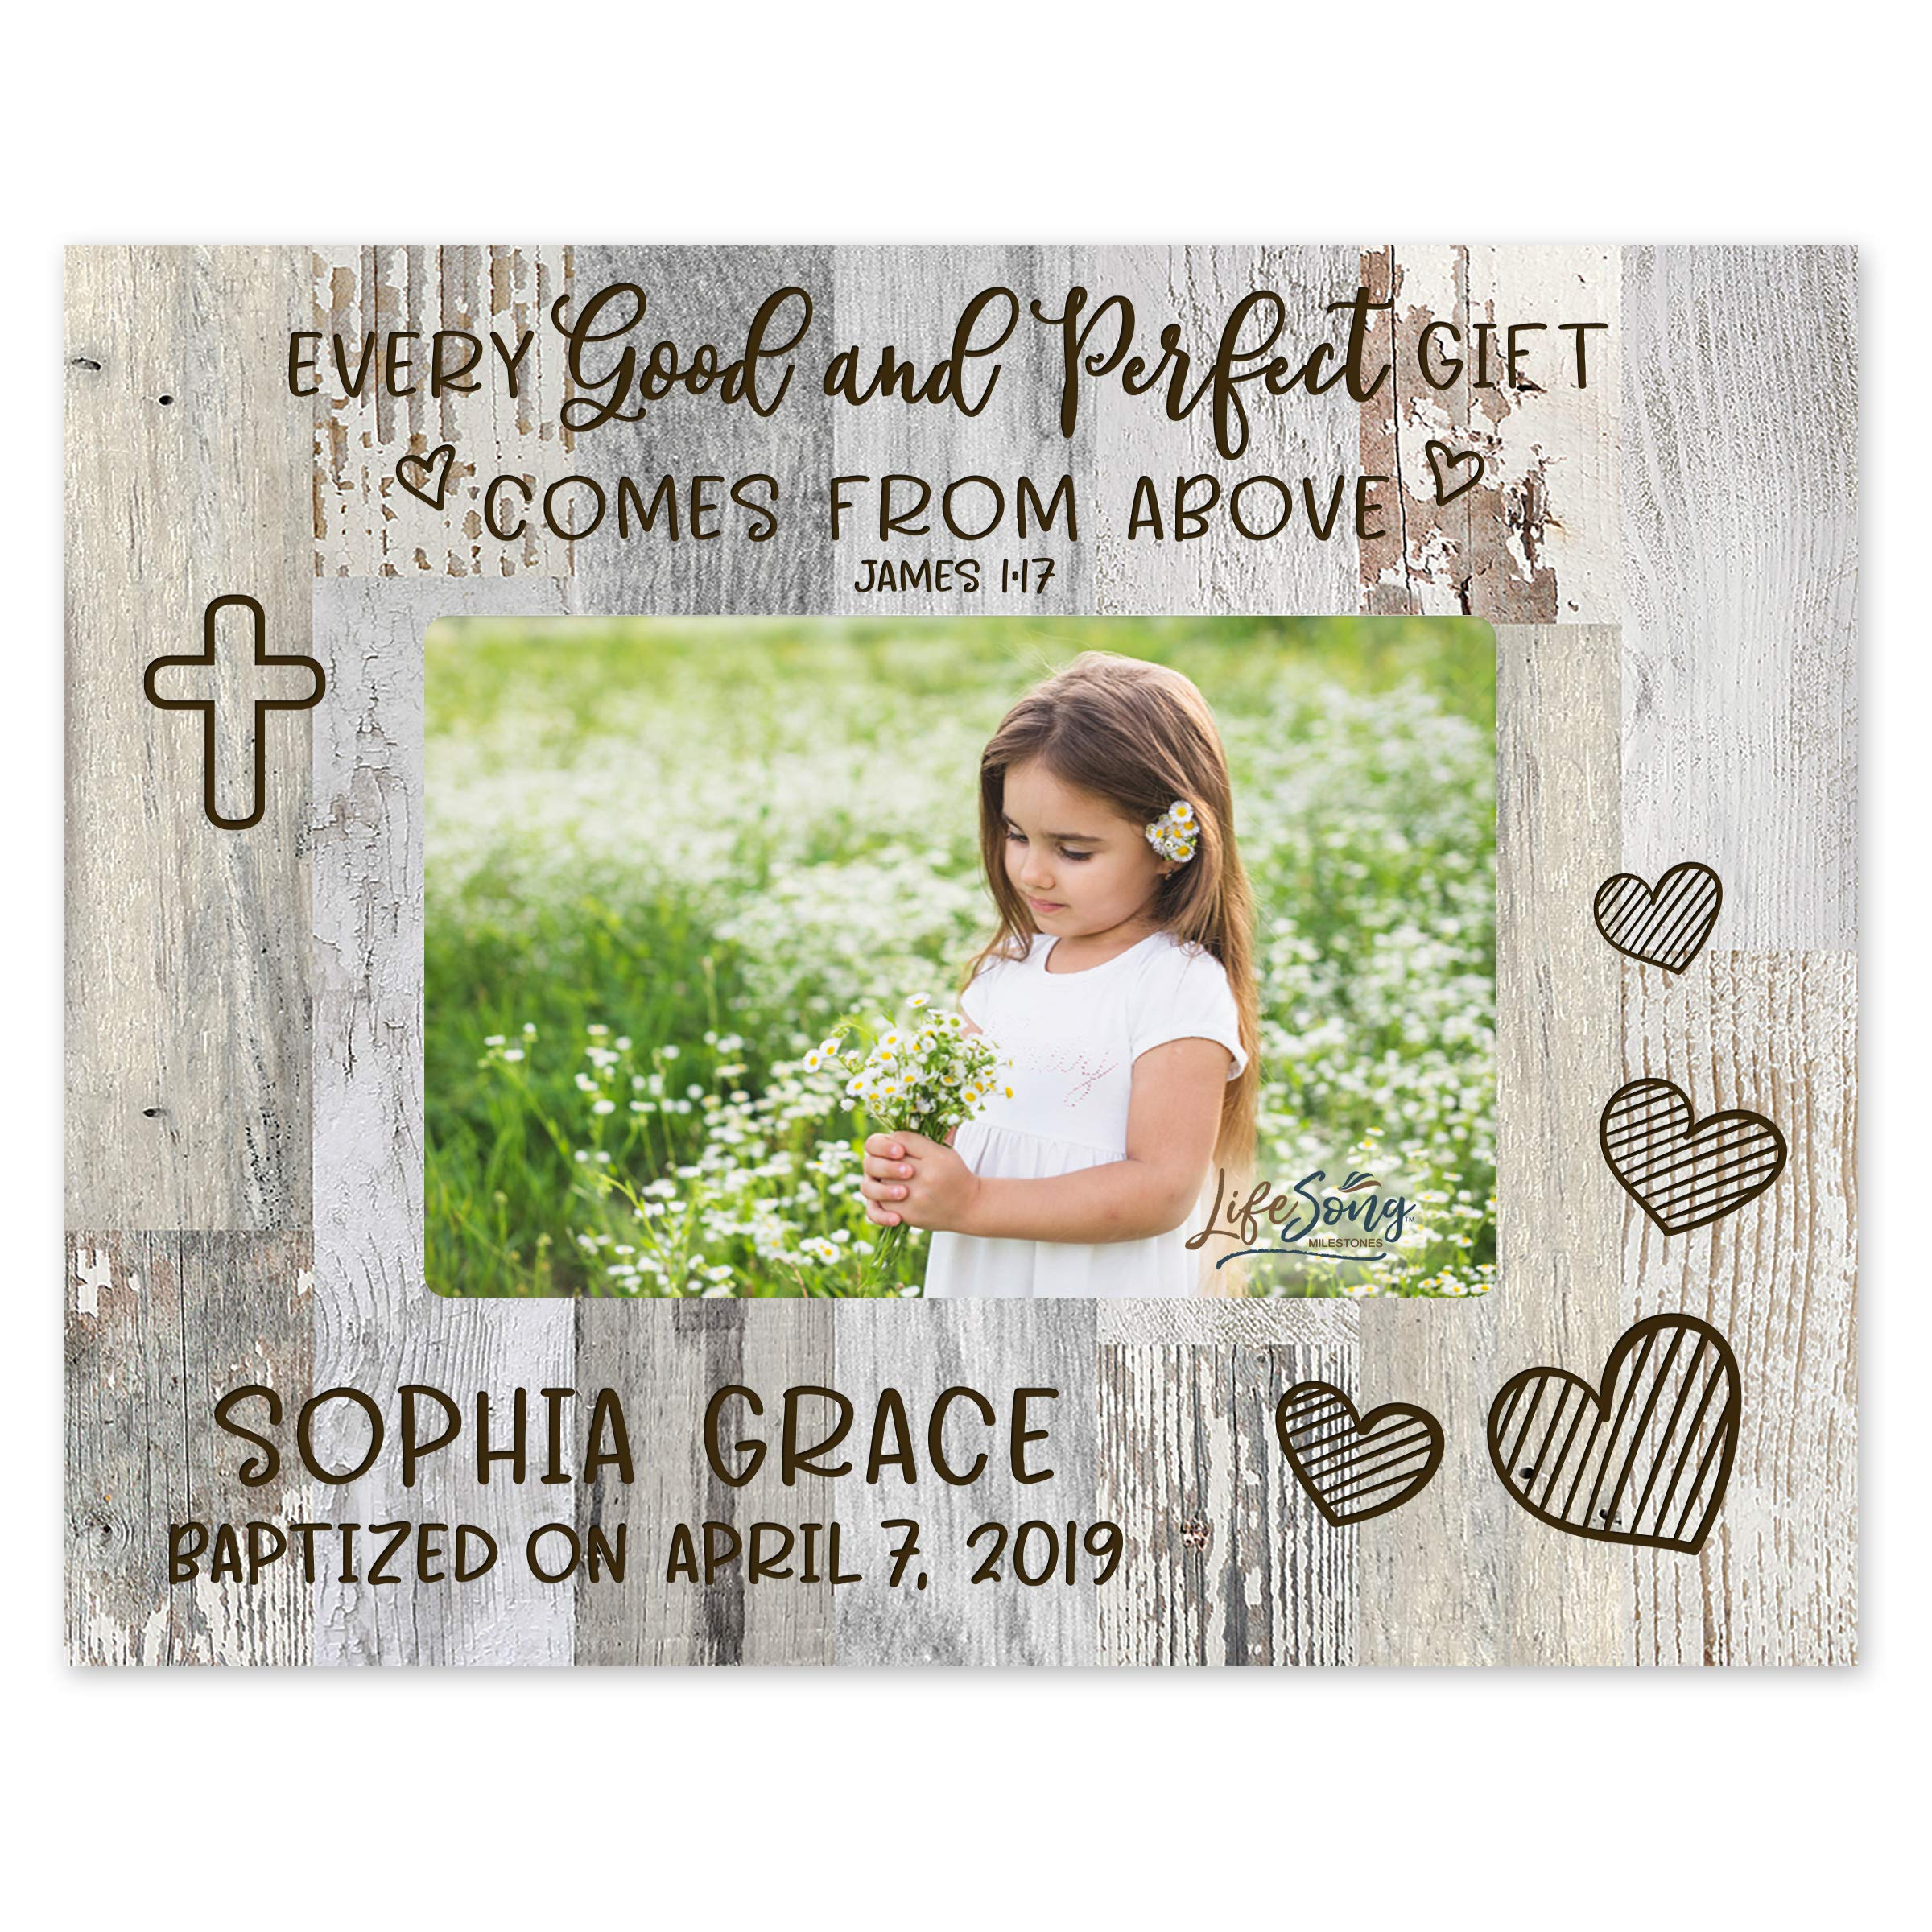 LifeSong Milestones 1st Holy Communion Baptism Photo Frame Baby Baptism Gifts for Boys and Girls Blessing for Child 8'' x 10'' Picture Frame Holds 4'' x 6'' Photo - Good & Perfect (Light Distressed)